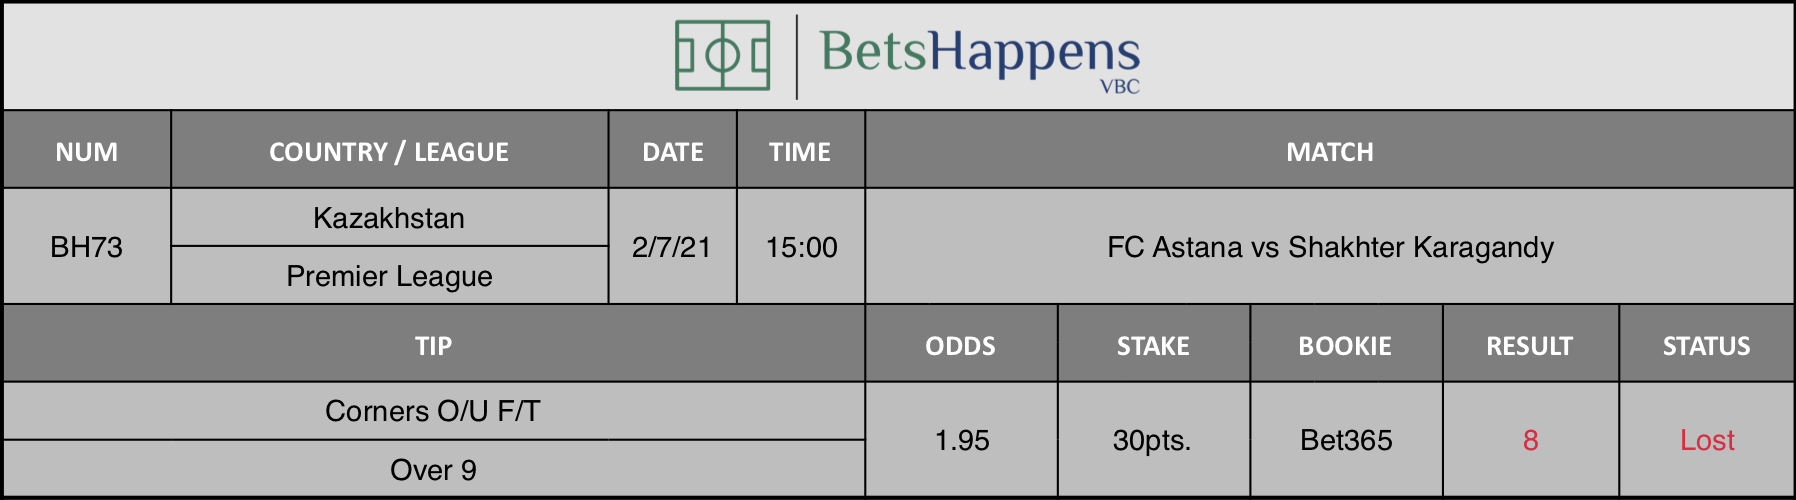 Results of our tip for the FC Astana vs Shakhter Karagandy match Corners O/U F/T Over 9 is recommended.